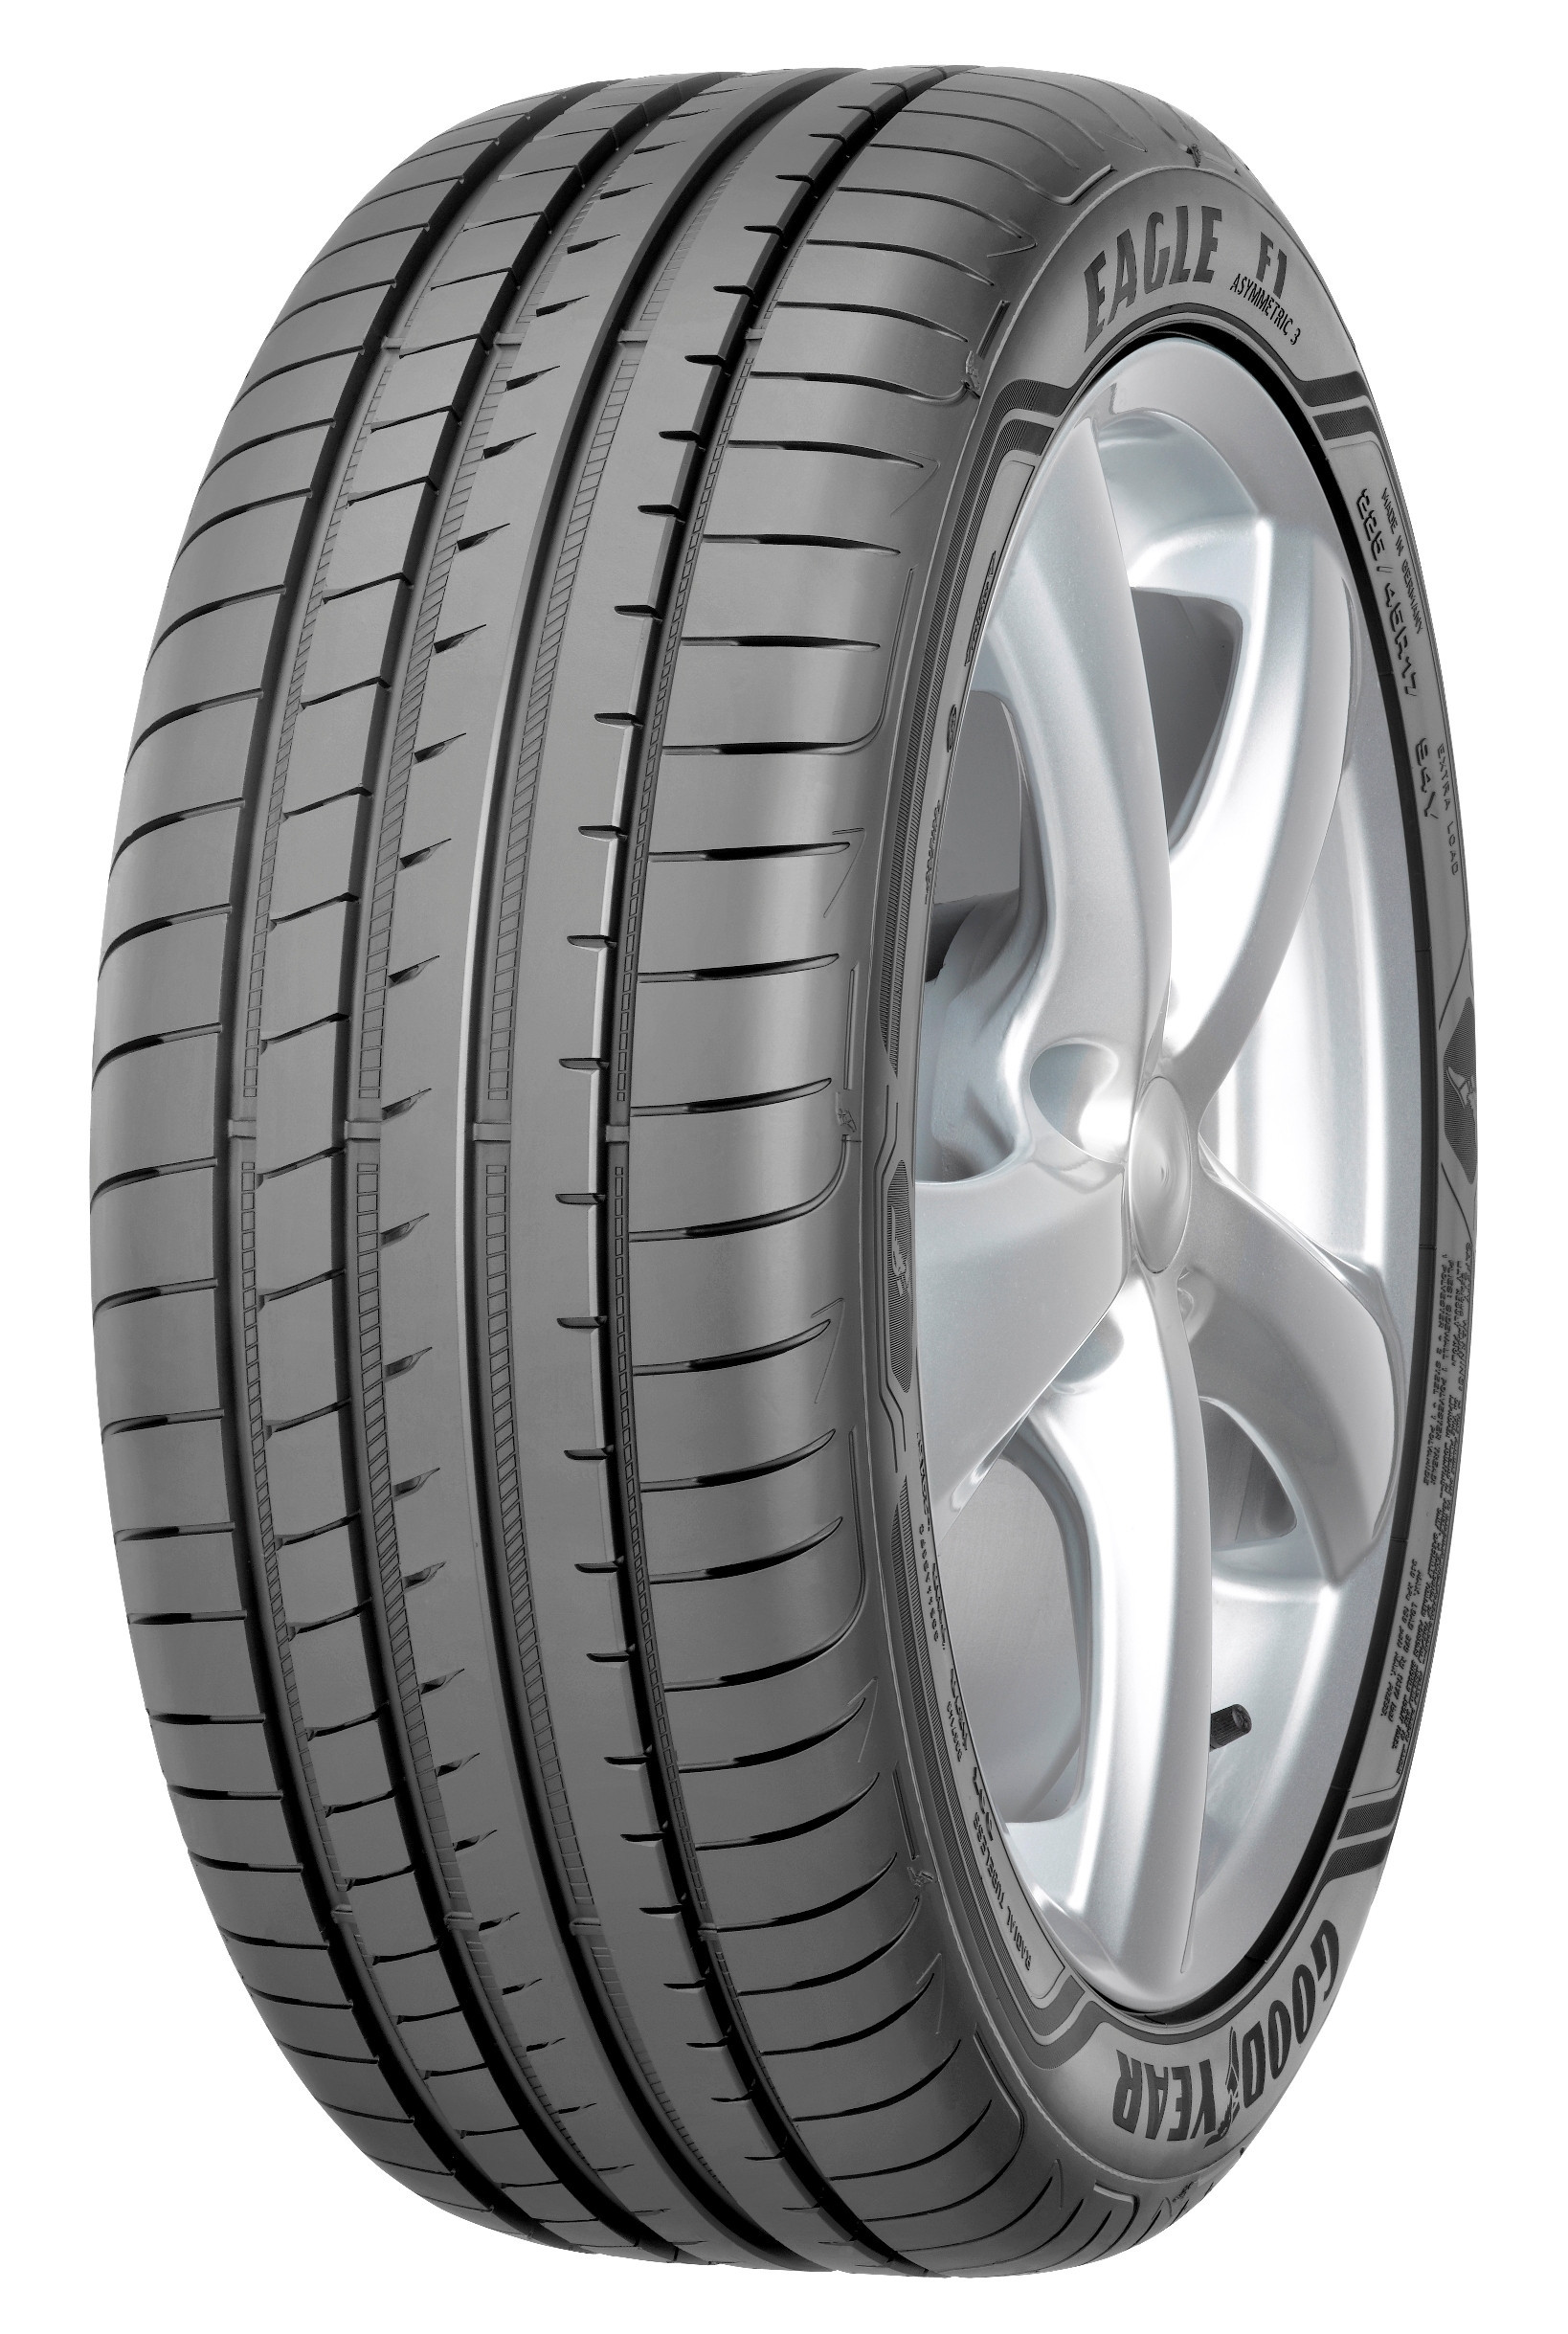 Anvelopa Vara 215/45R17 87Y Goodyear Eagle F1 Asymmetric 3